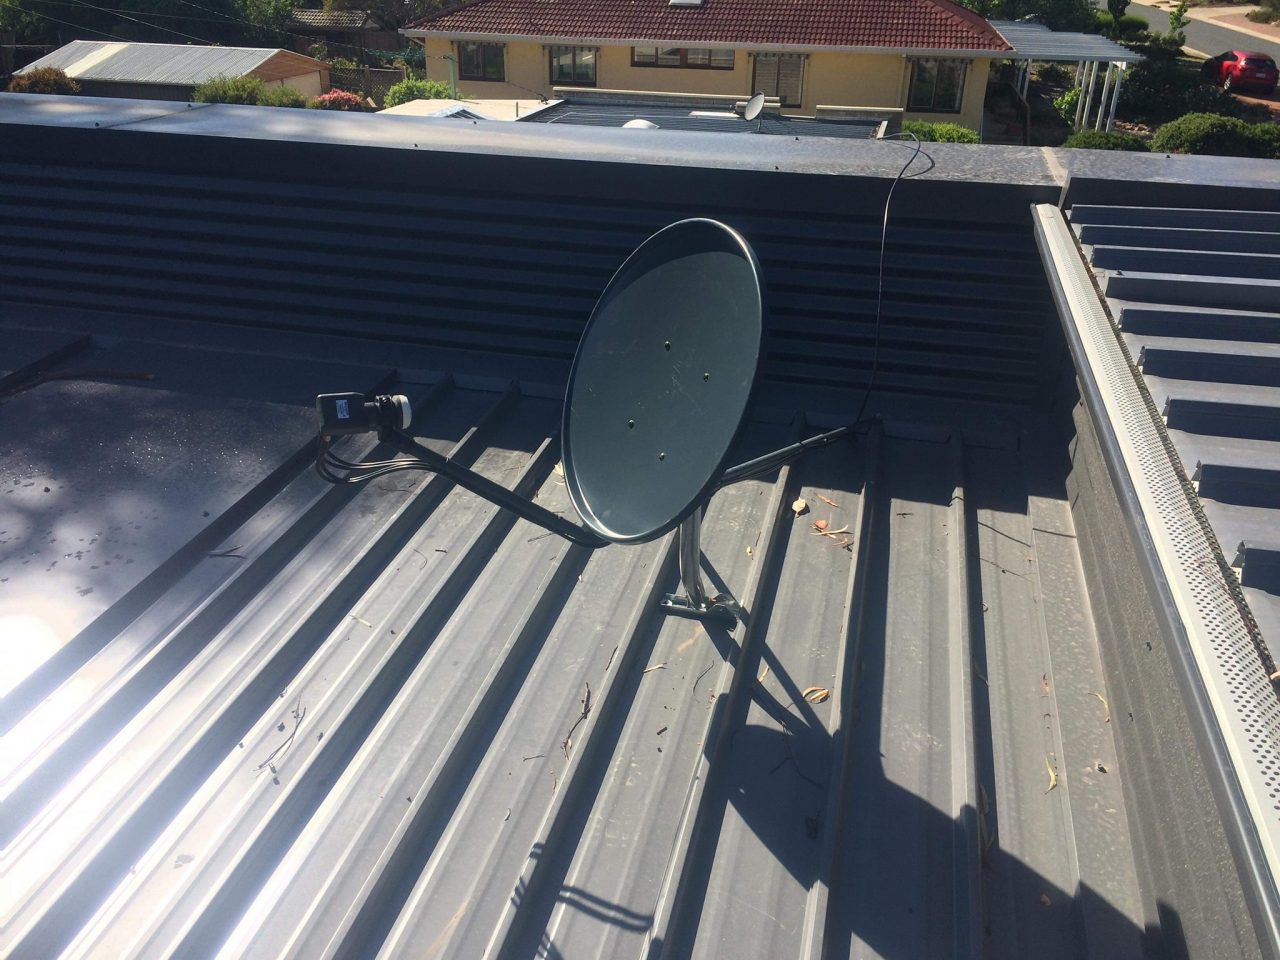 Digital TV Antenna Installation (dish) on Metal Roof by Canberra Antennas.